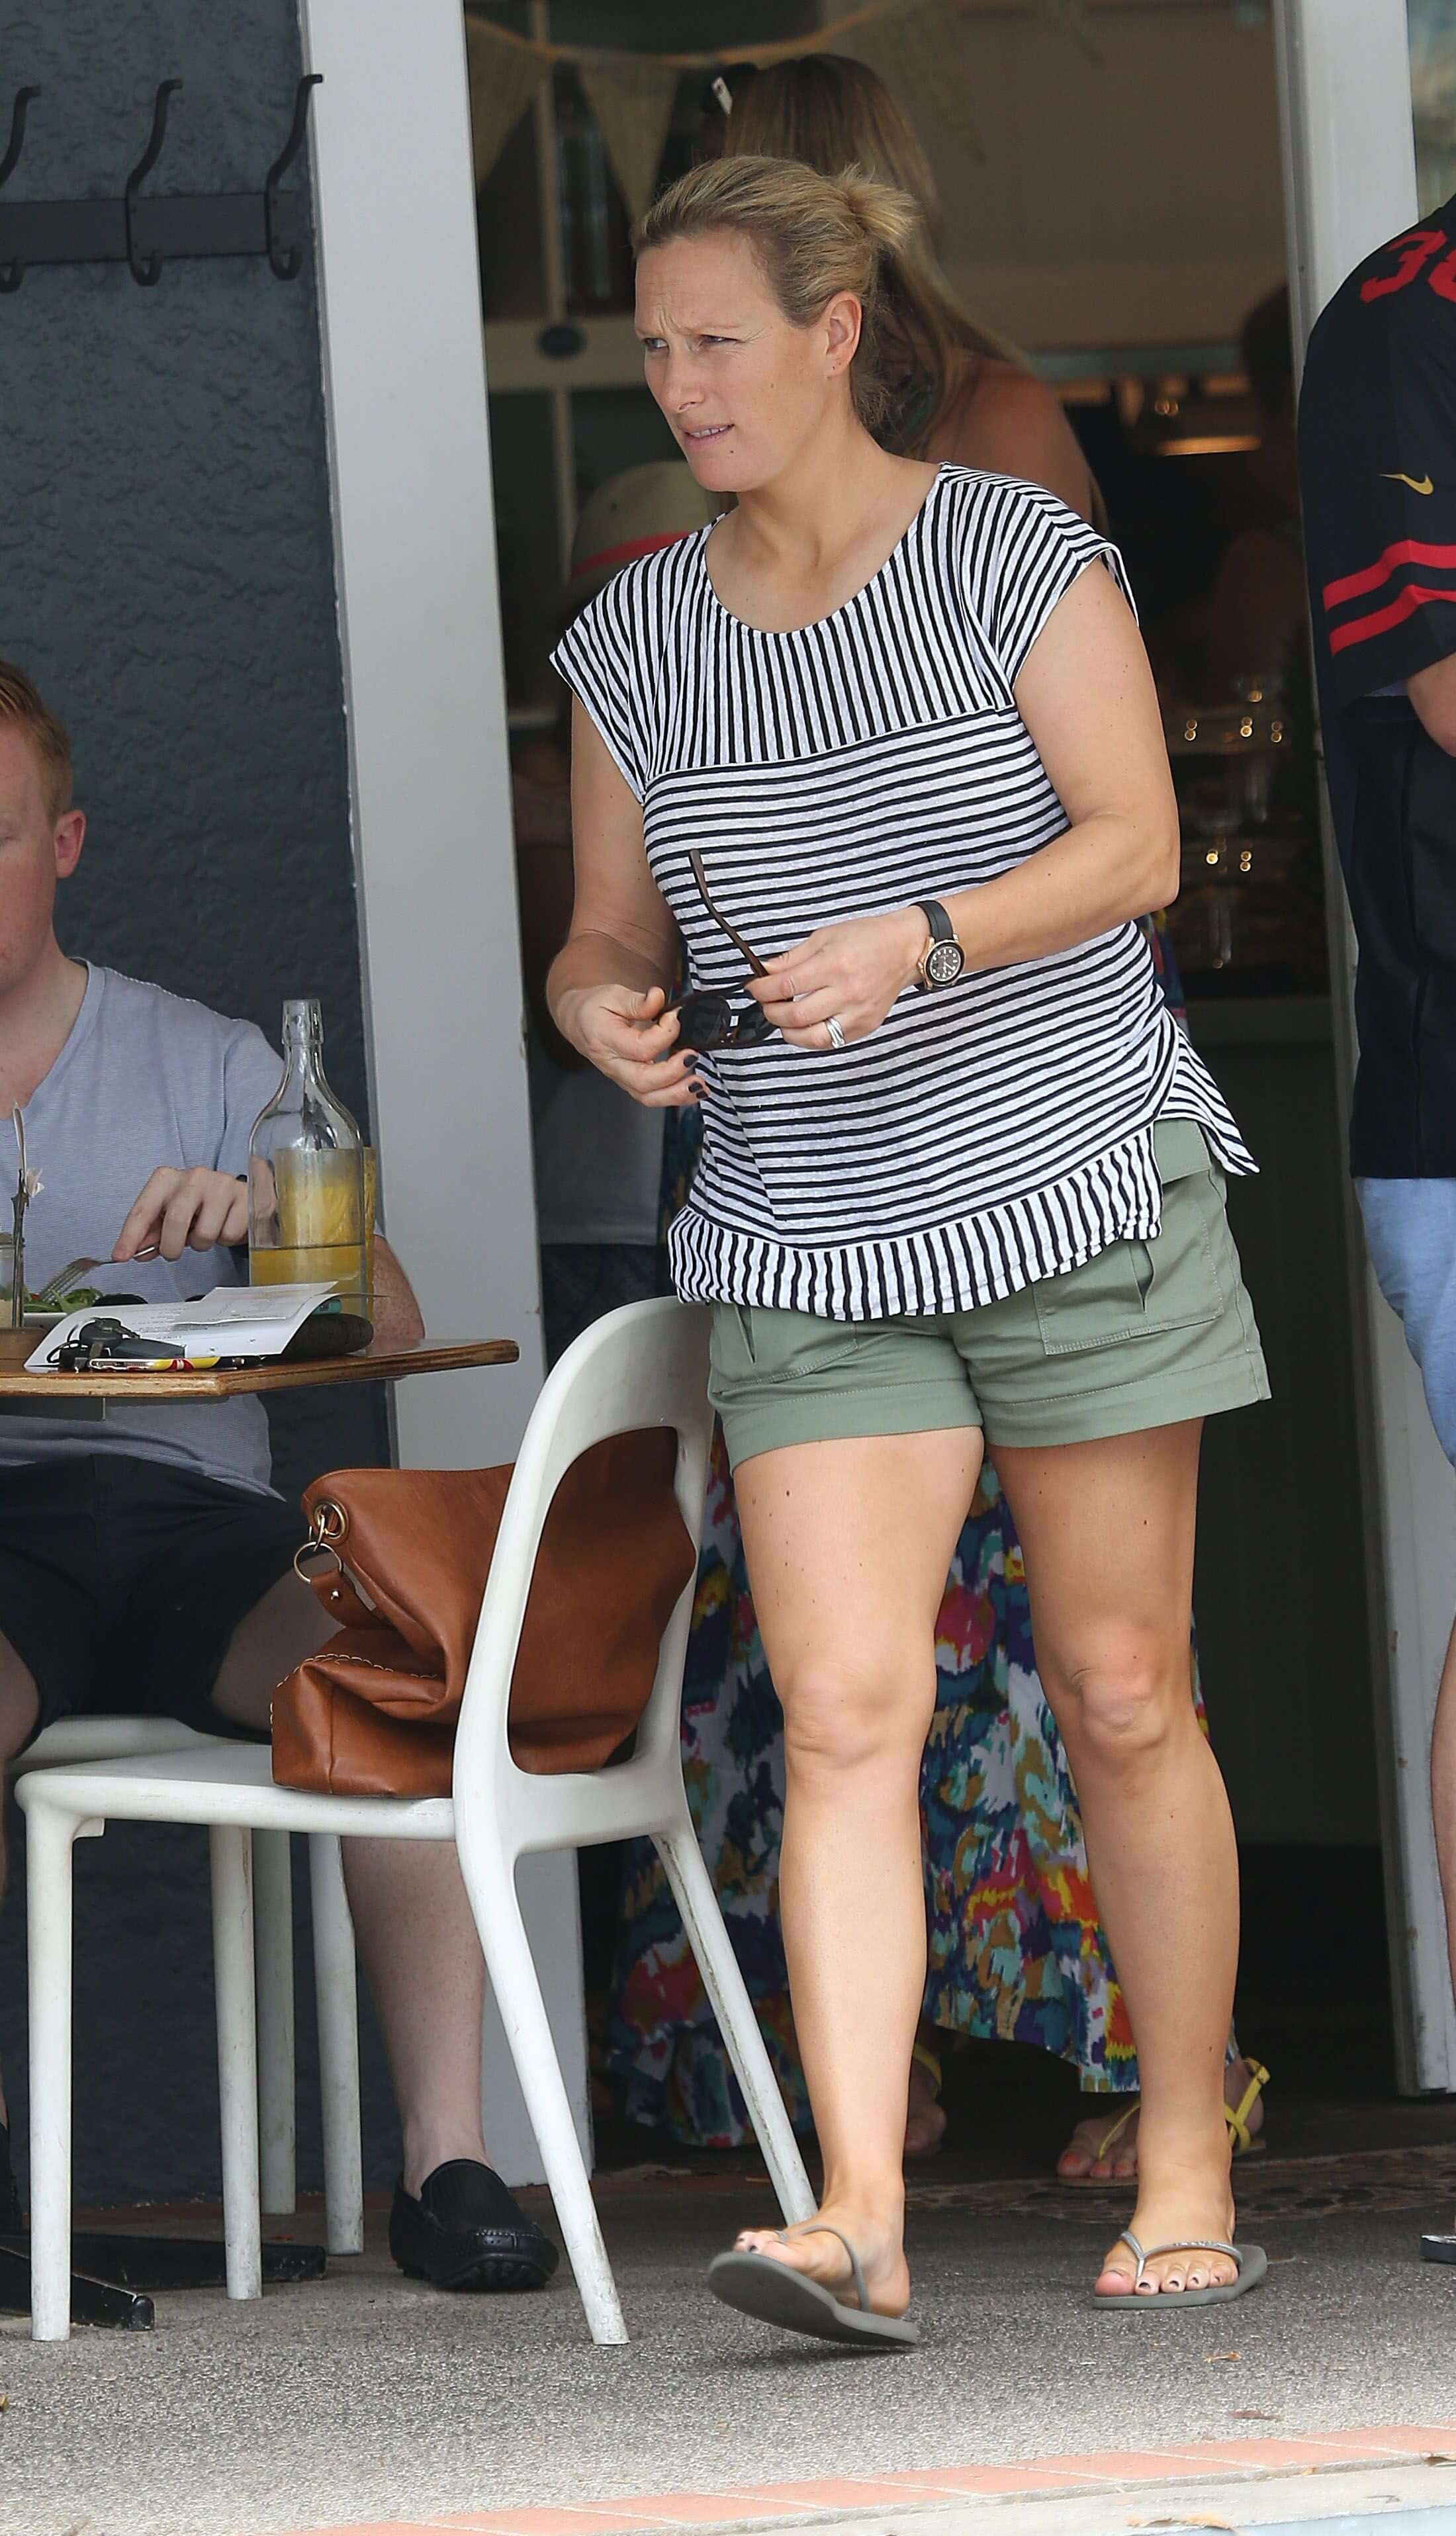 Zara Phillips sexy legs